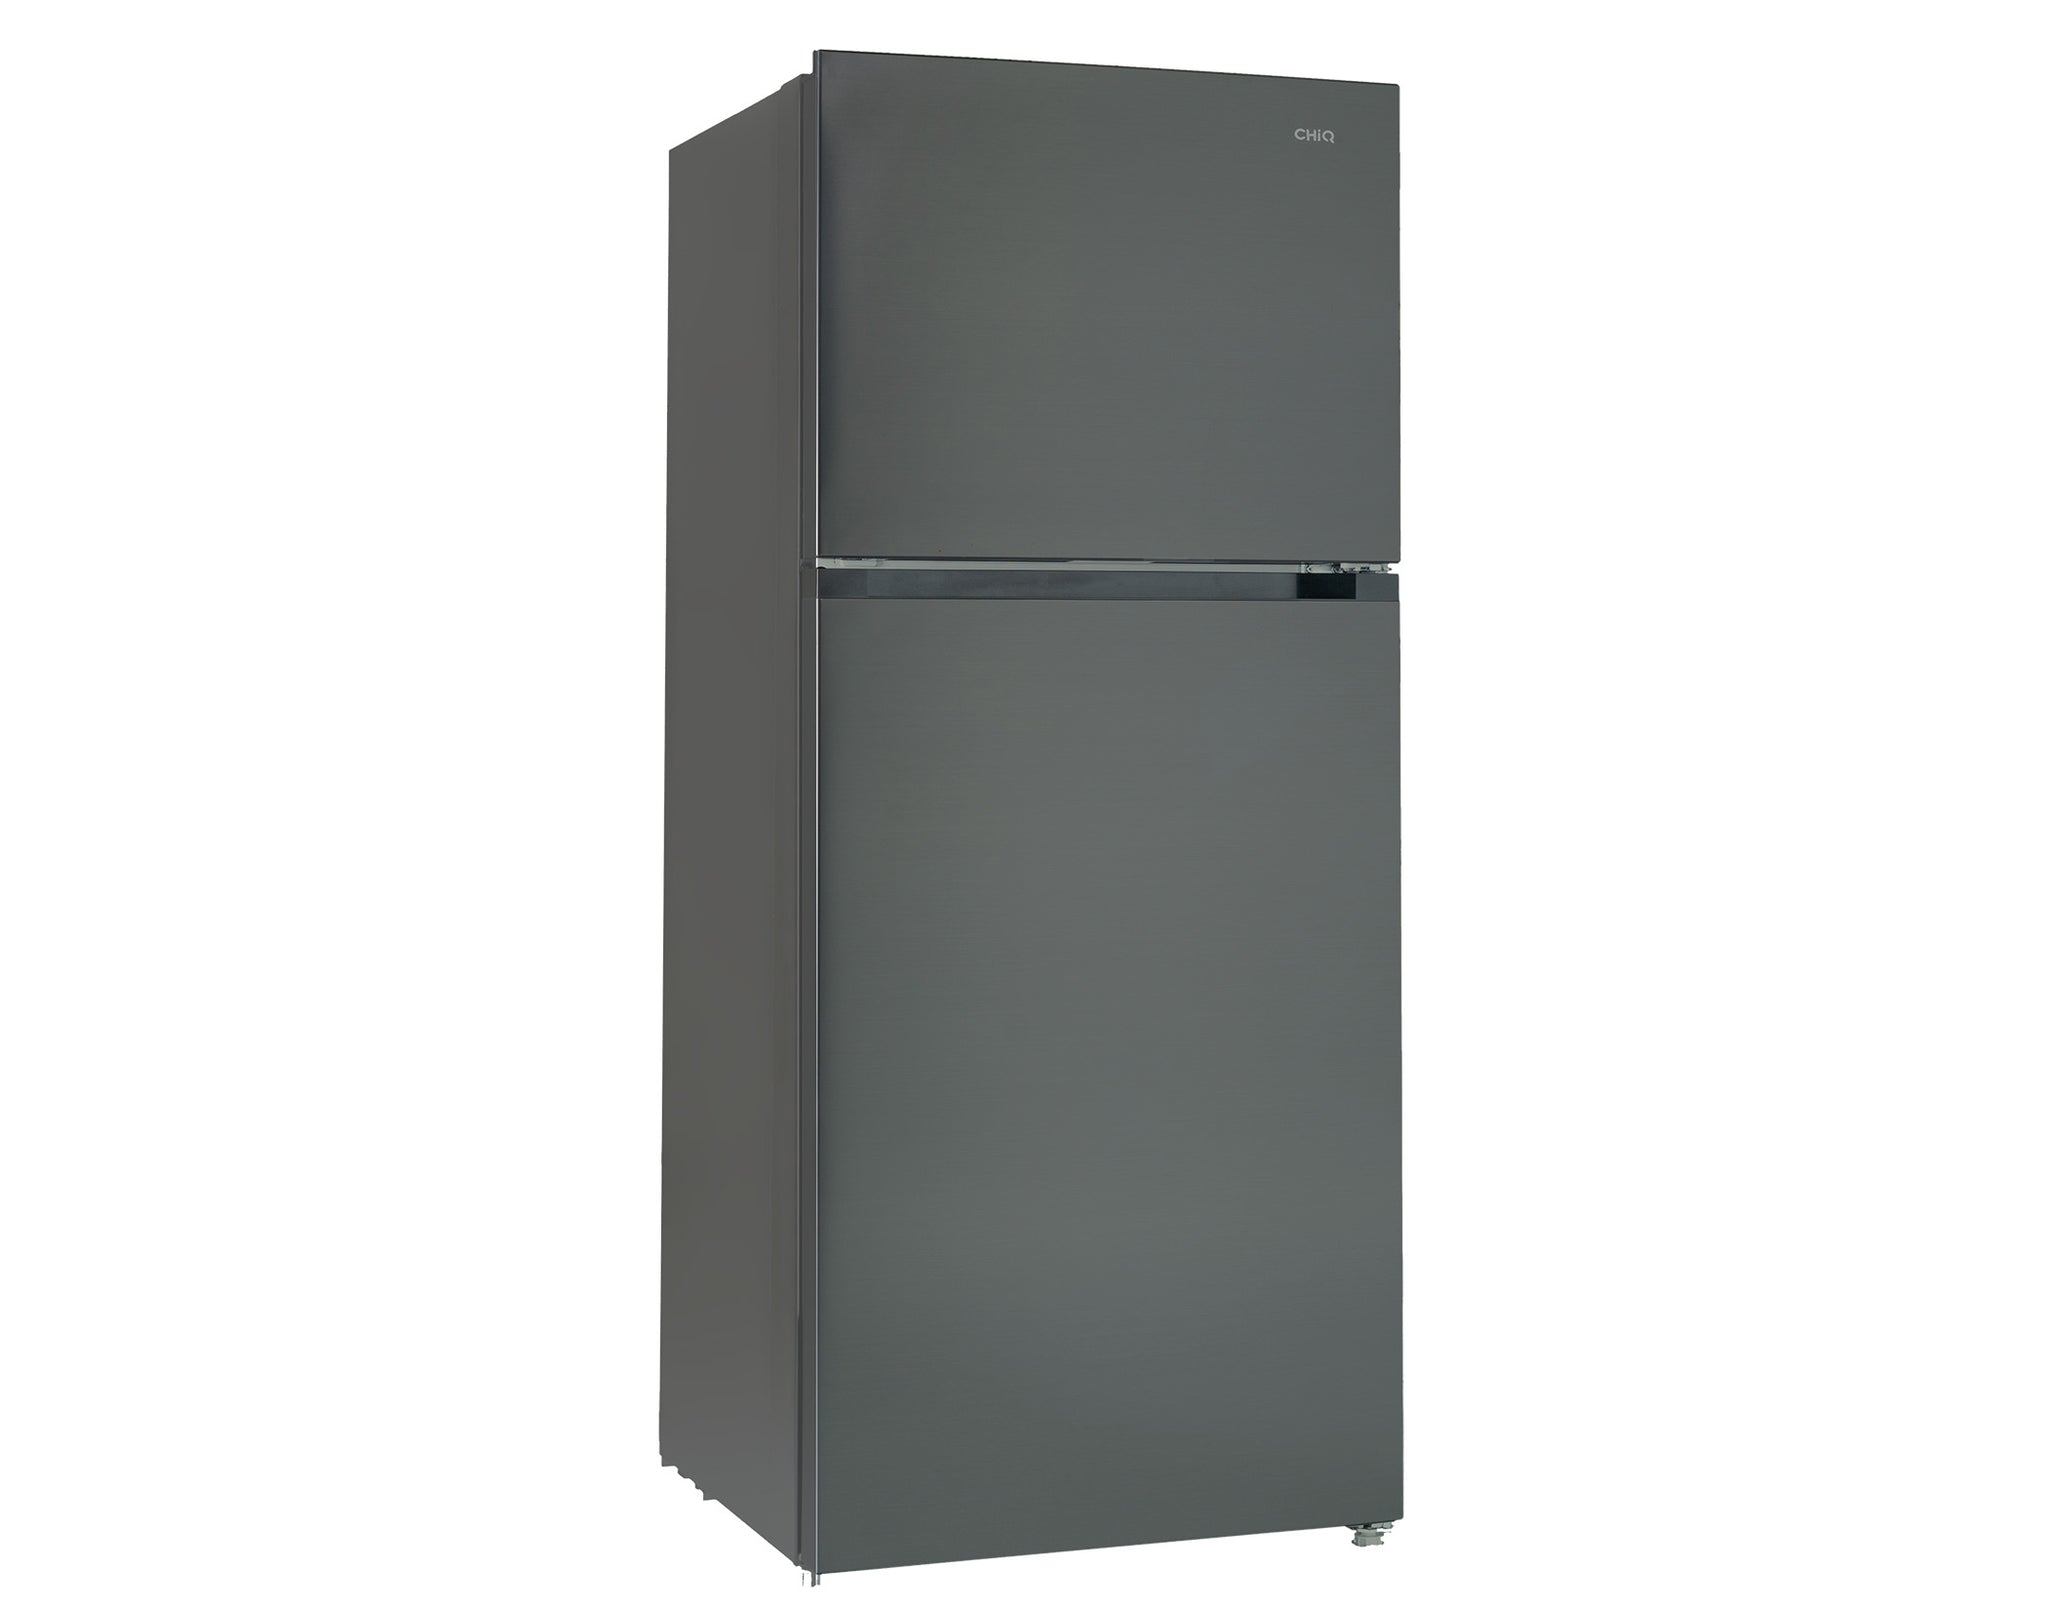 CHiQ CTM549B 550L Top Mount Black Steel Inverter System Fridge